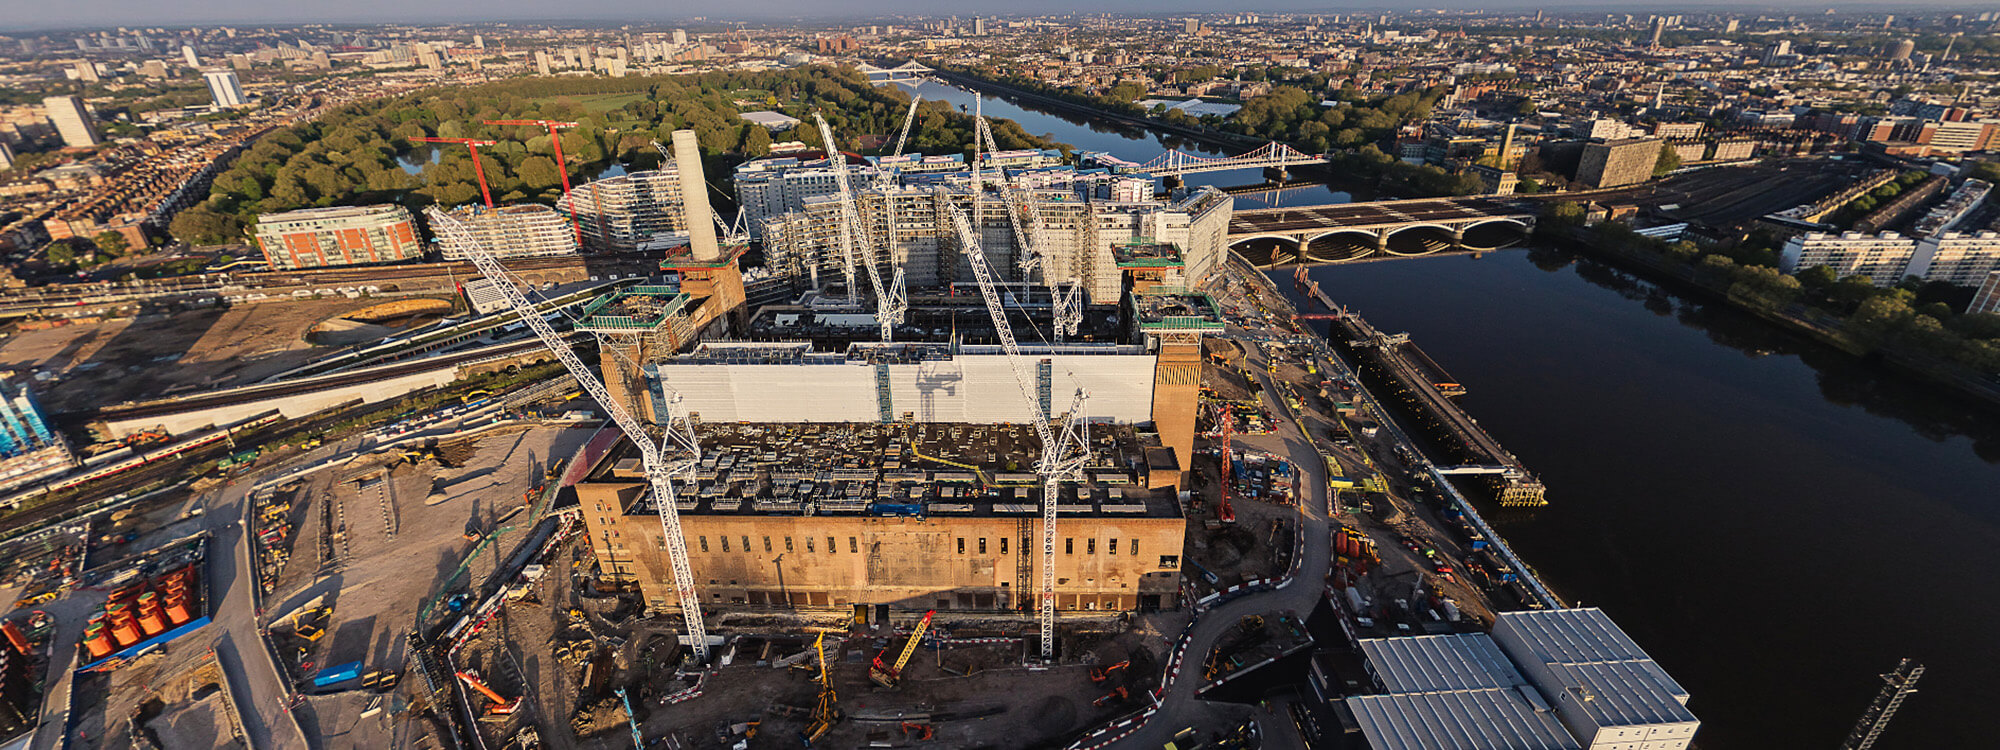 Aerial view over Battersea Power Station